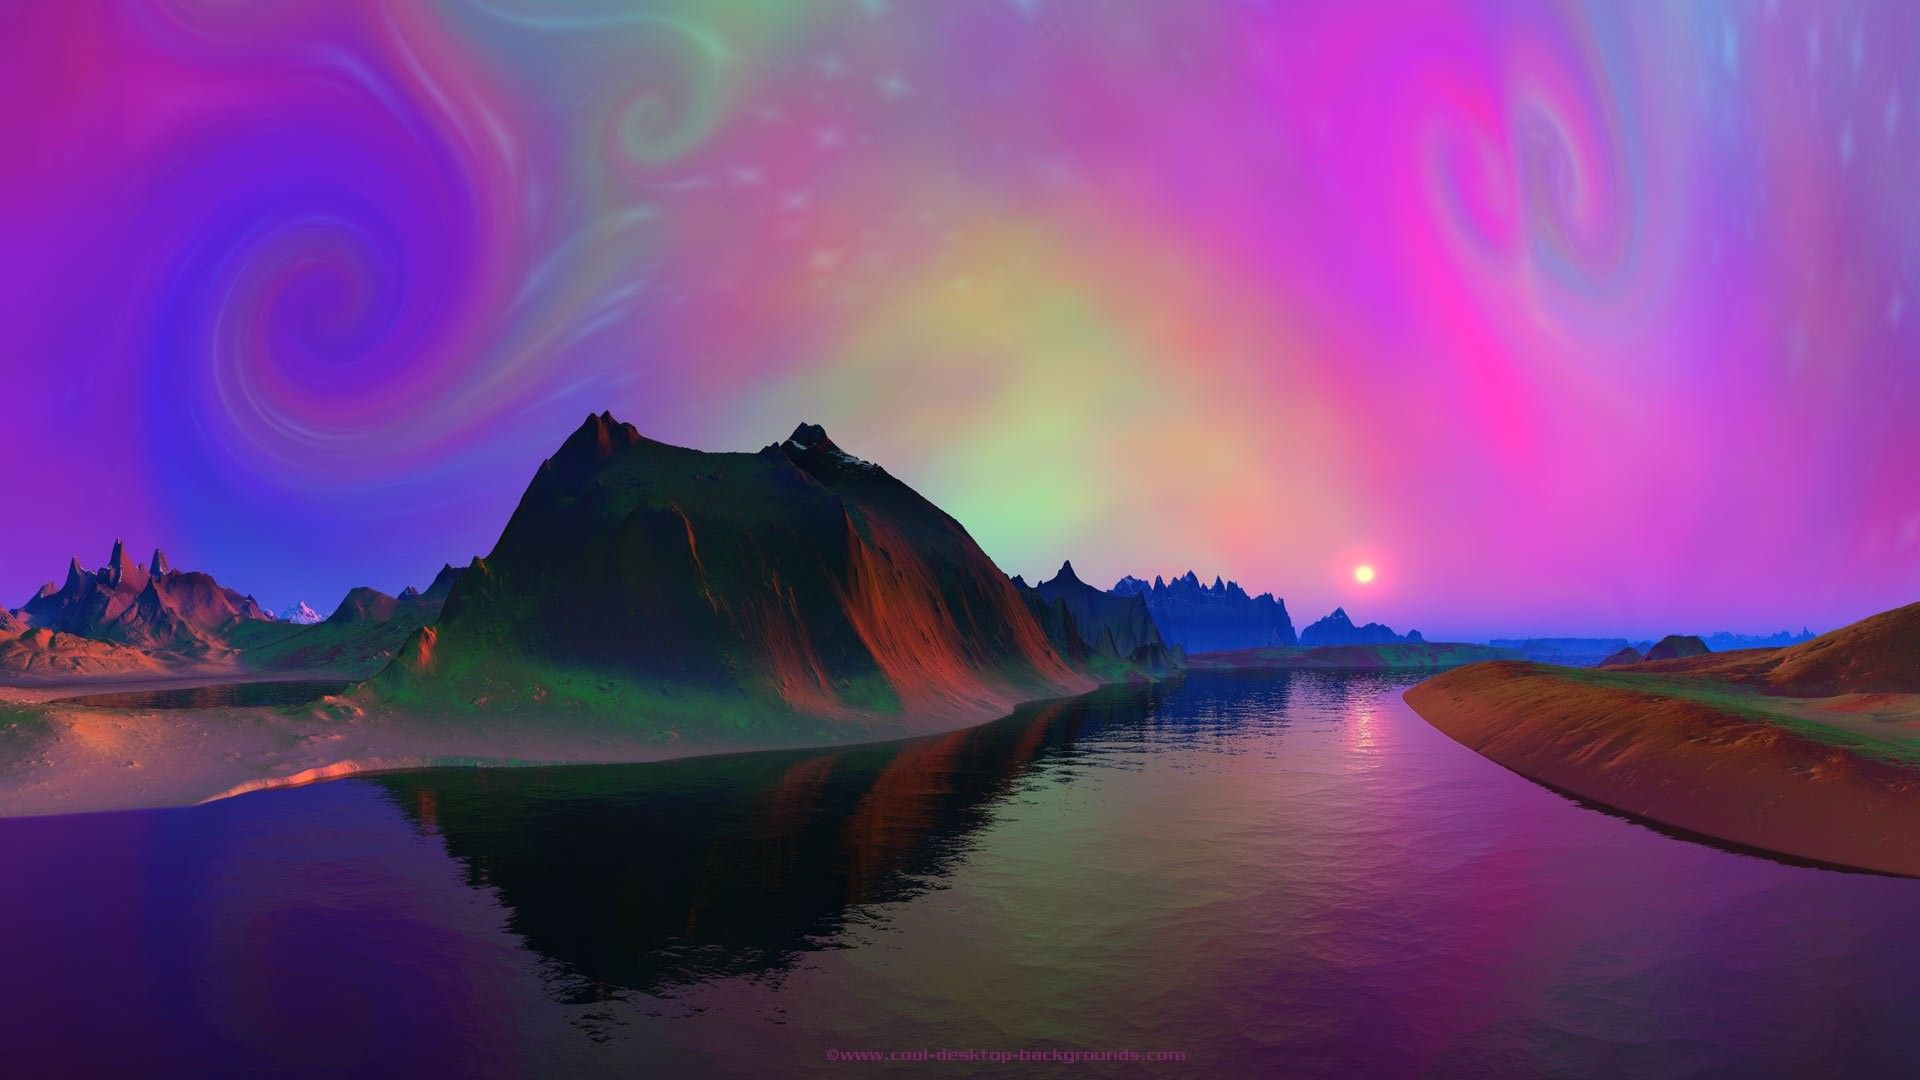 1920x1080 Psychedelic Desktop Backgrounds 268787 (With